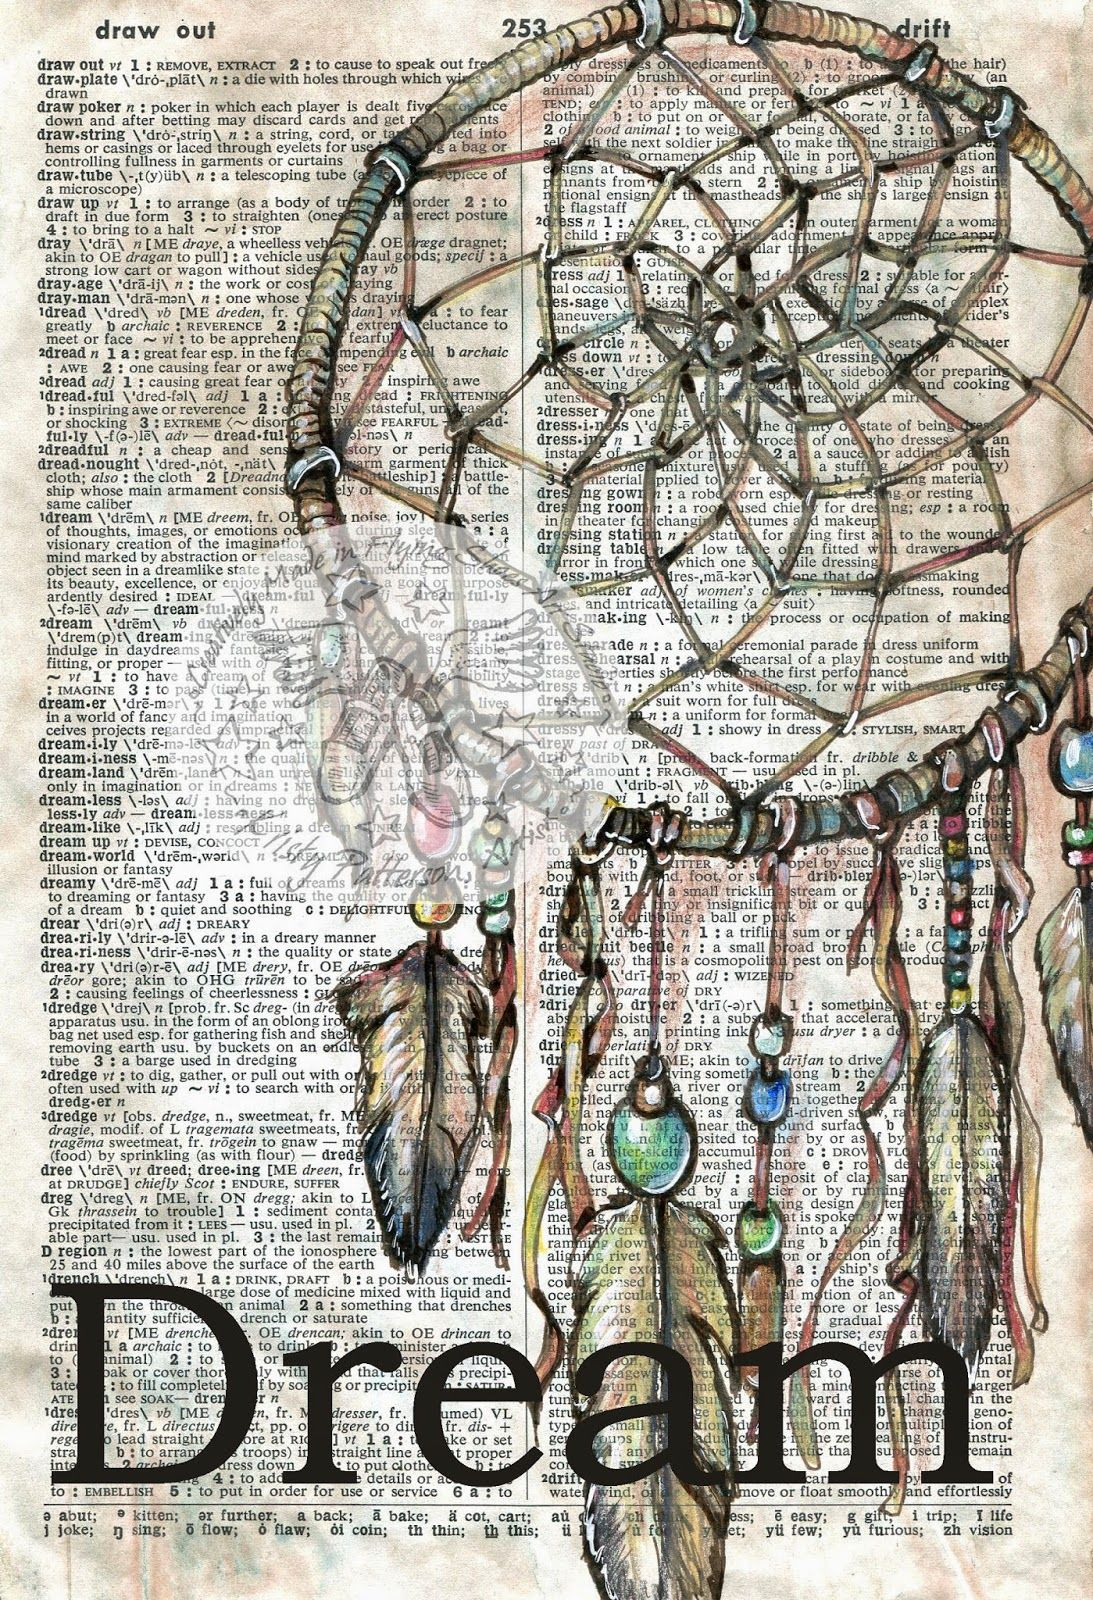 dreamcatcher mixed media drawing on collegiate dictionary page with